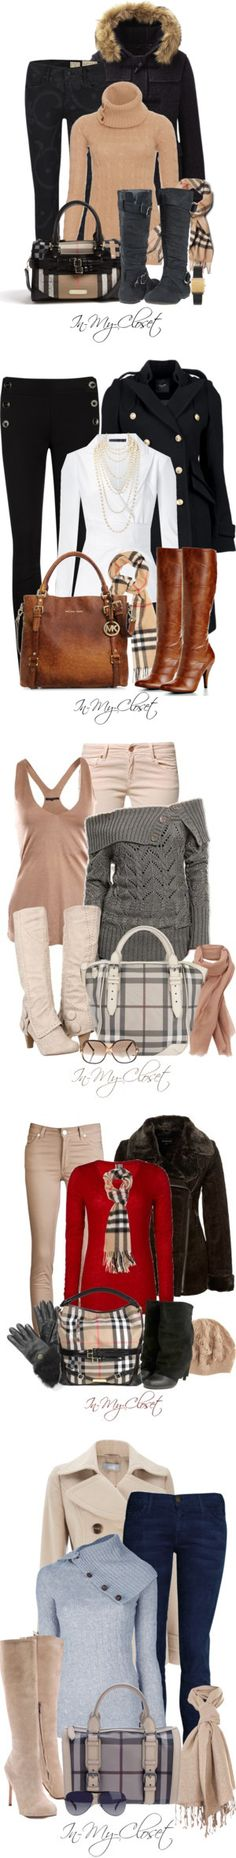 """""""Burberry!"""" by in-my-closet on Polyvore"""